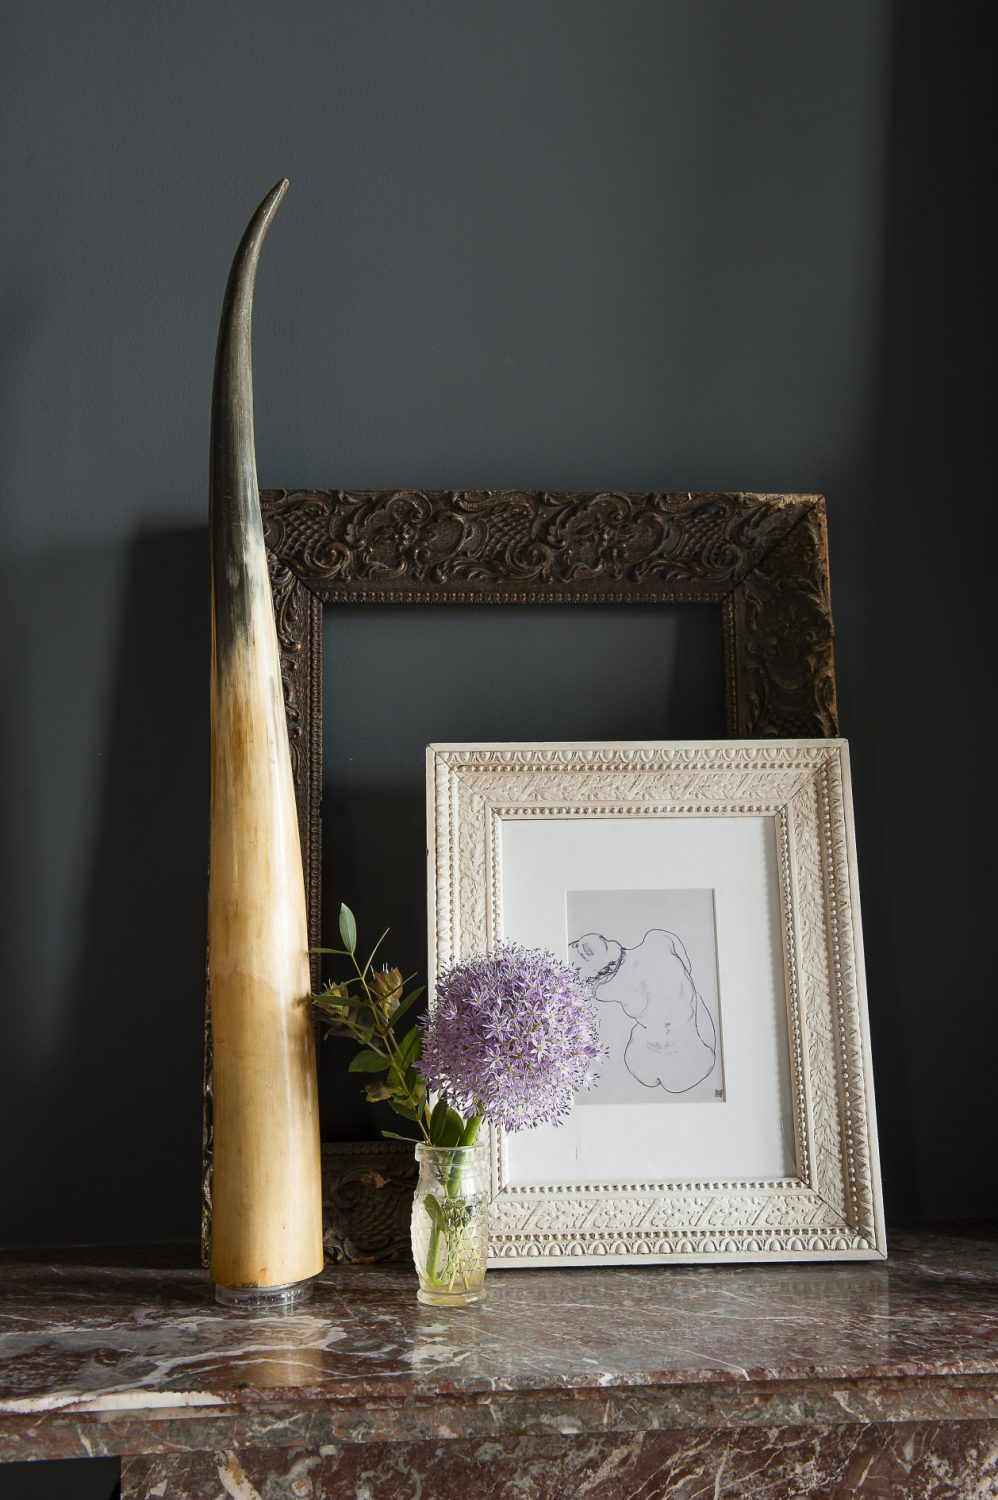 Karen has framed a postcard of a work by a Egon Schiele in an ornate frame on the mantelpiece